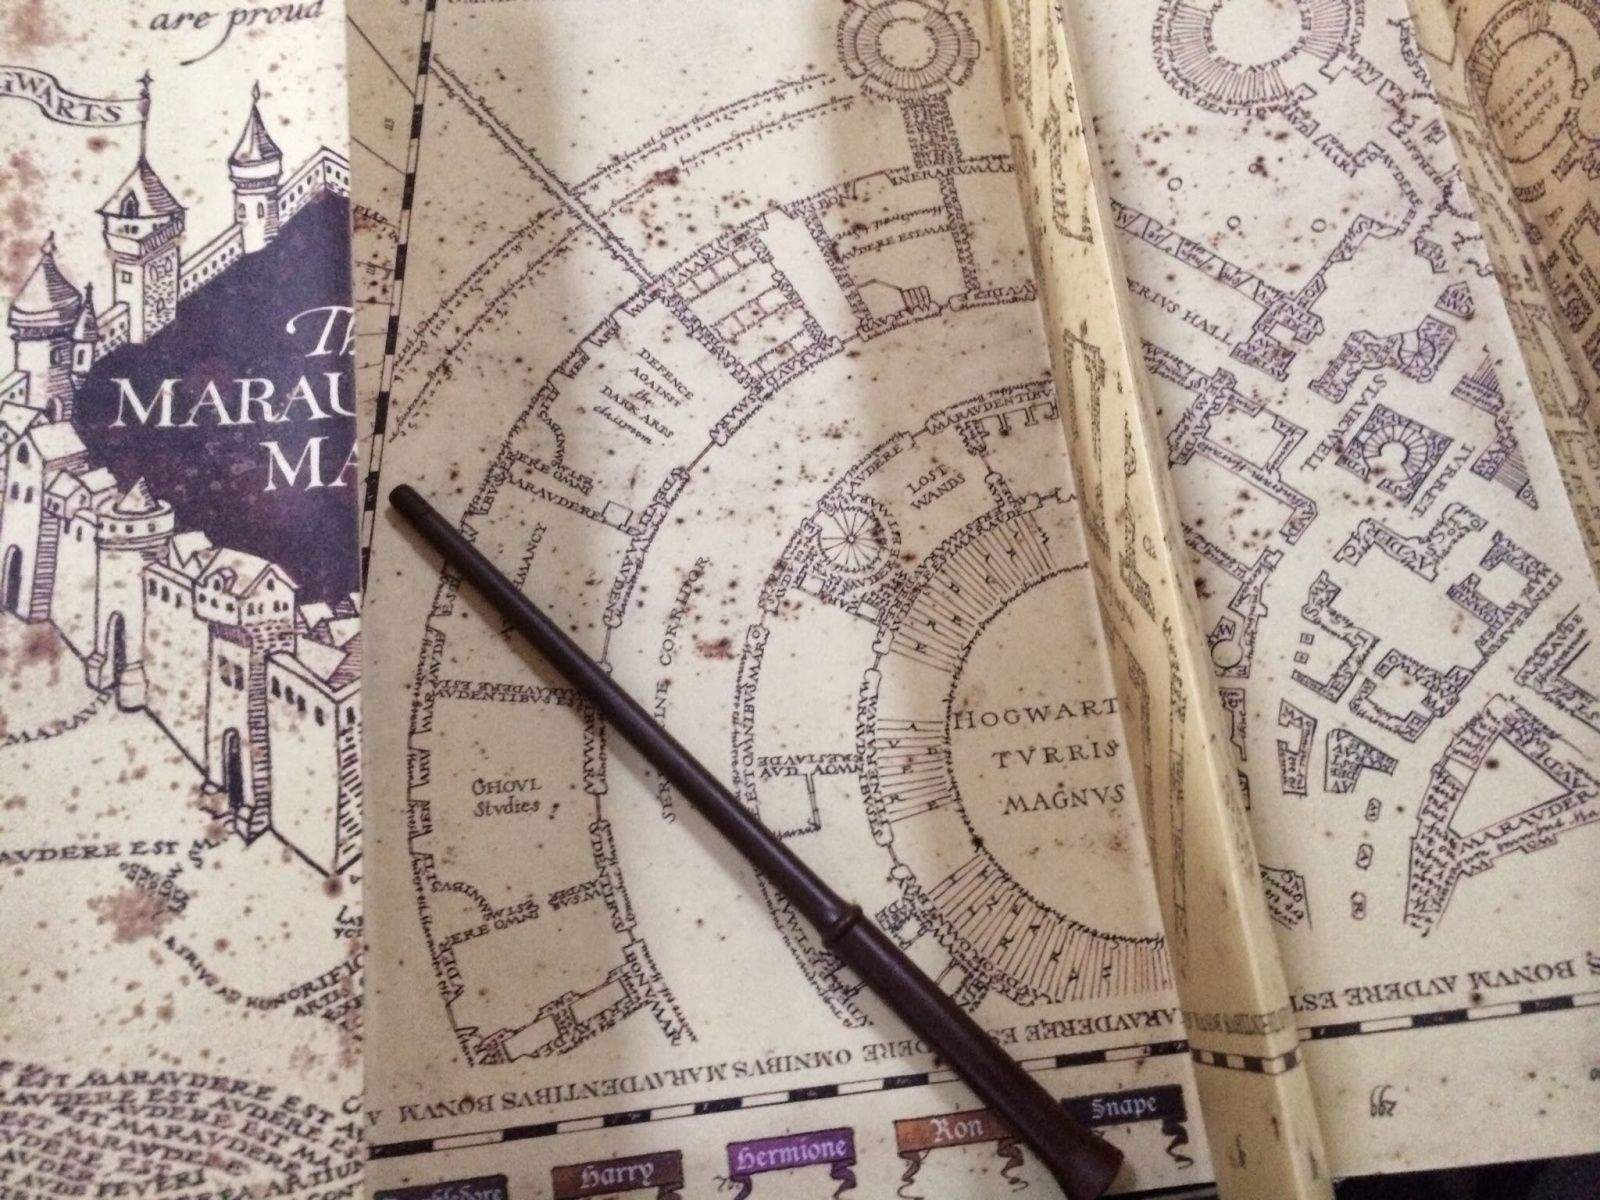 It might not quite be Harry Potter's Marauder's Map, but it's getting there. Photo: The Wizarding World of Harry Potter at Universal Orlando